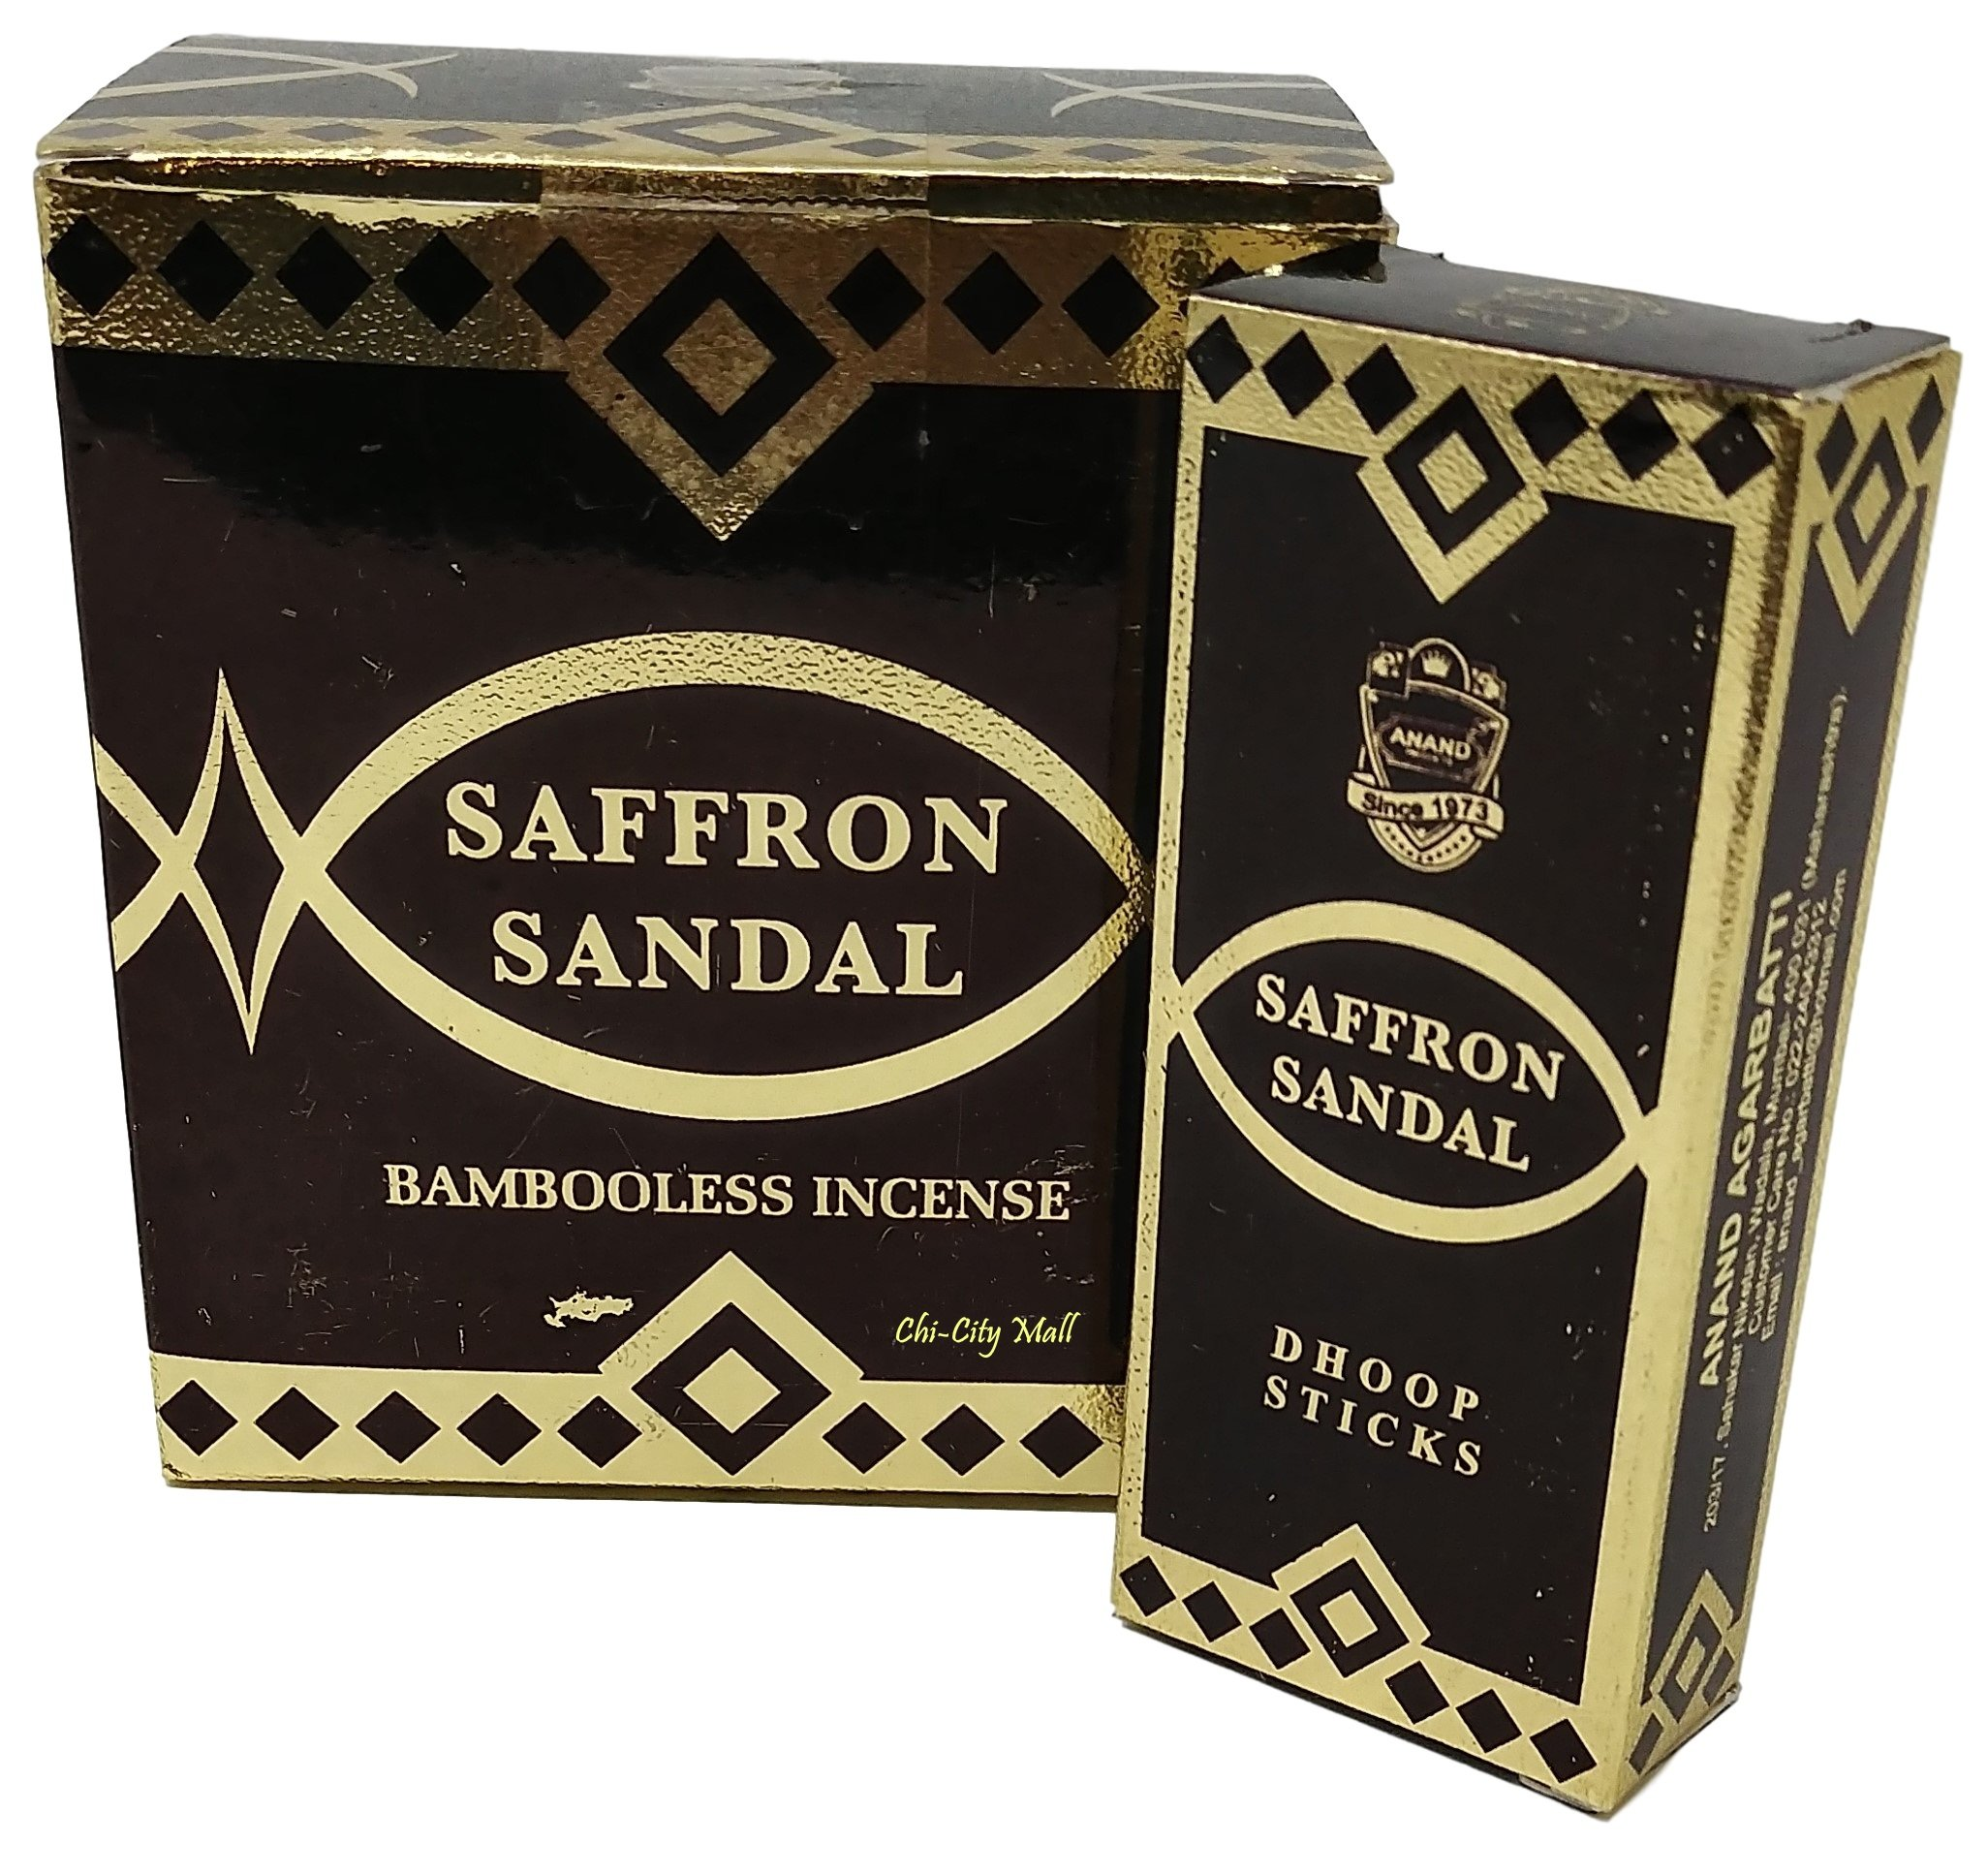 Chi-City Mall Saffron Sandal Bambooless Incense - Dhoop Sticks Anand Agarbatti | Hand-rolled in India | 15 Sticks x 6 Boxes = 90 Dhoop Sticks |